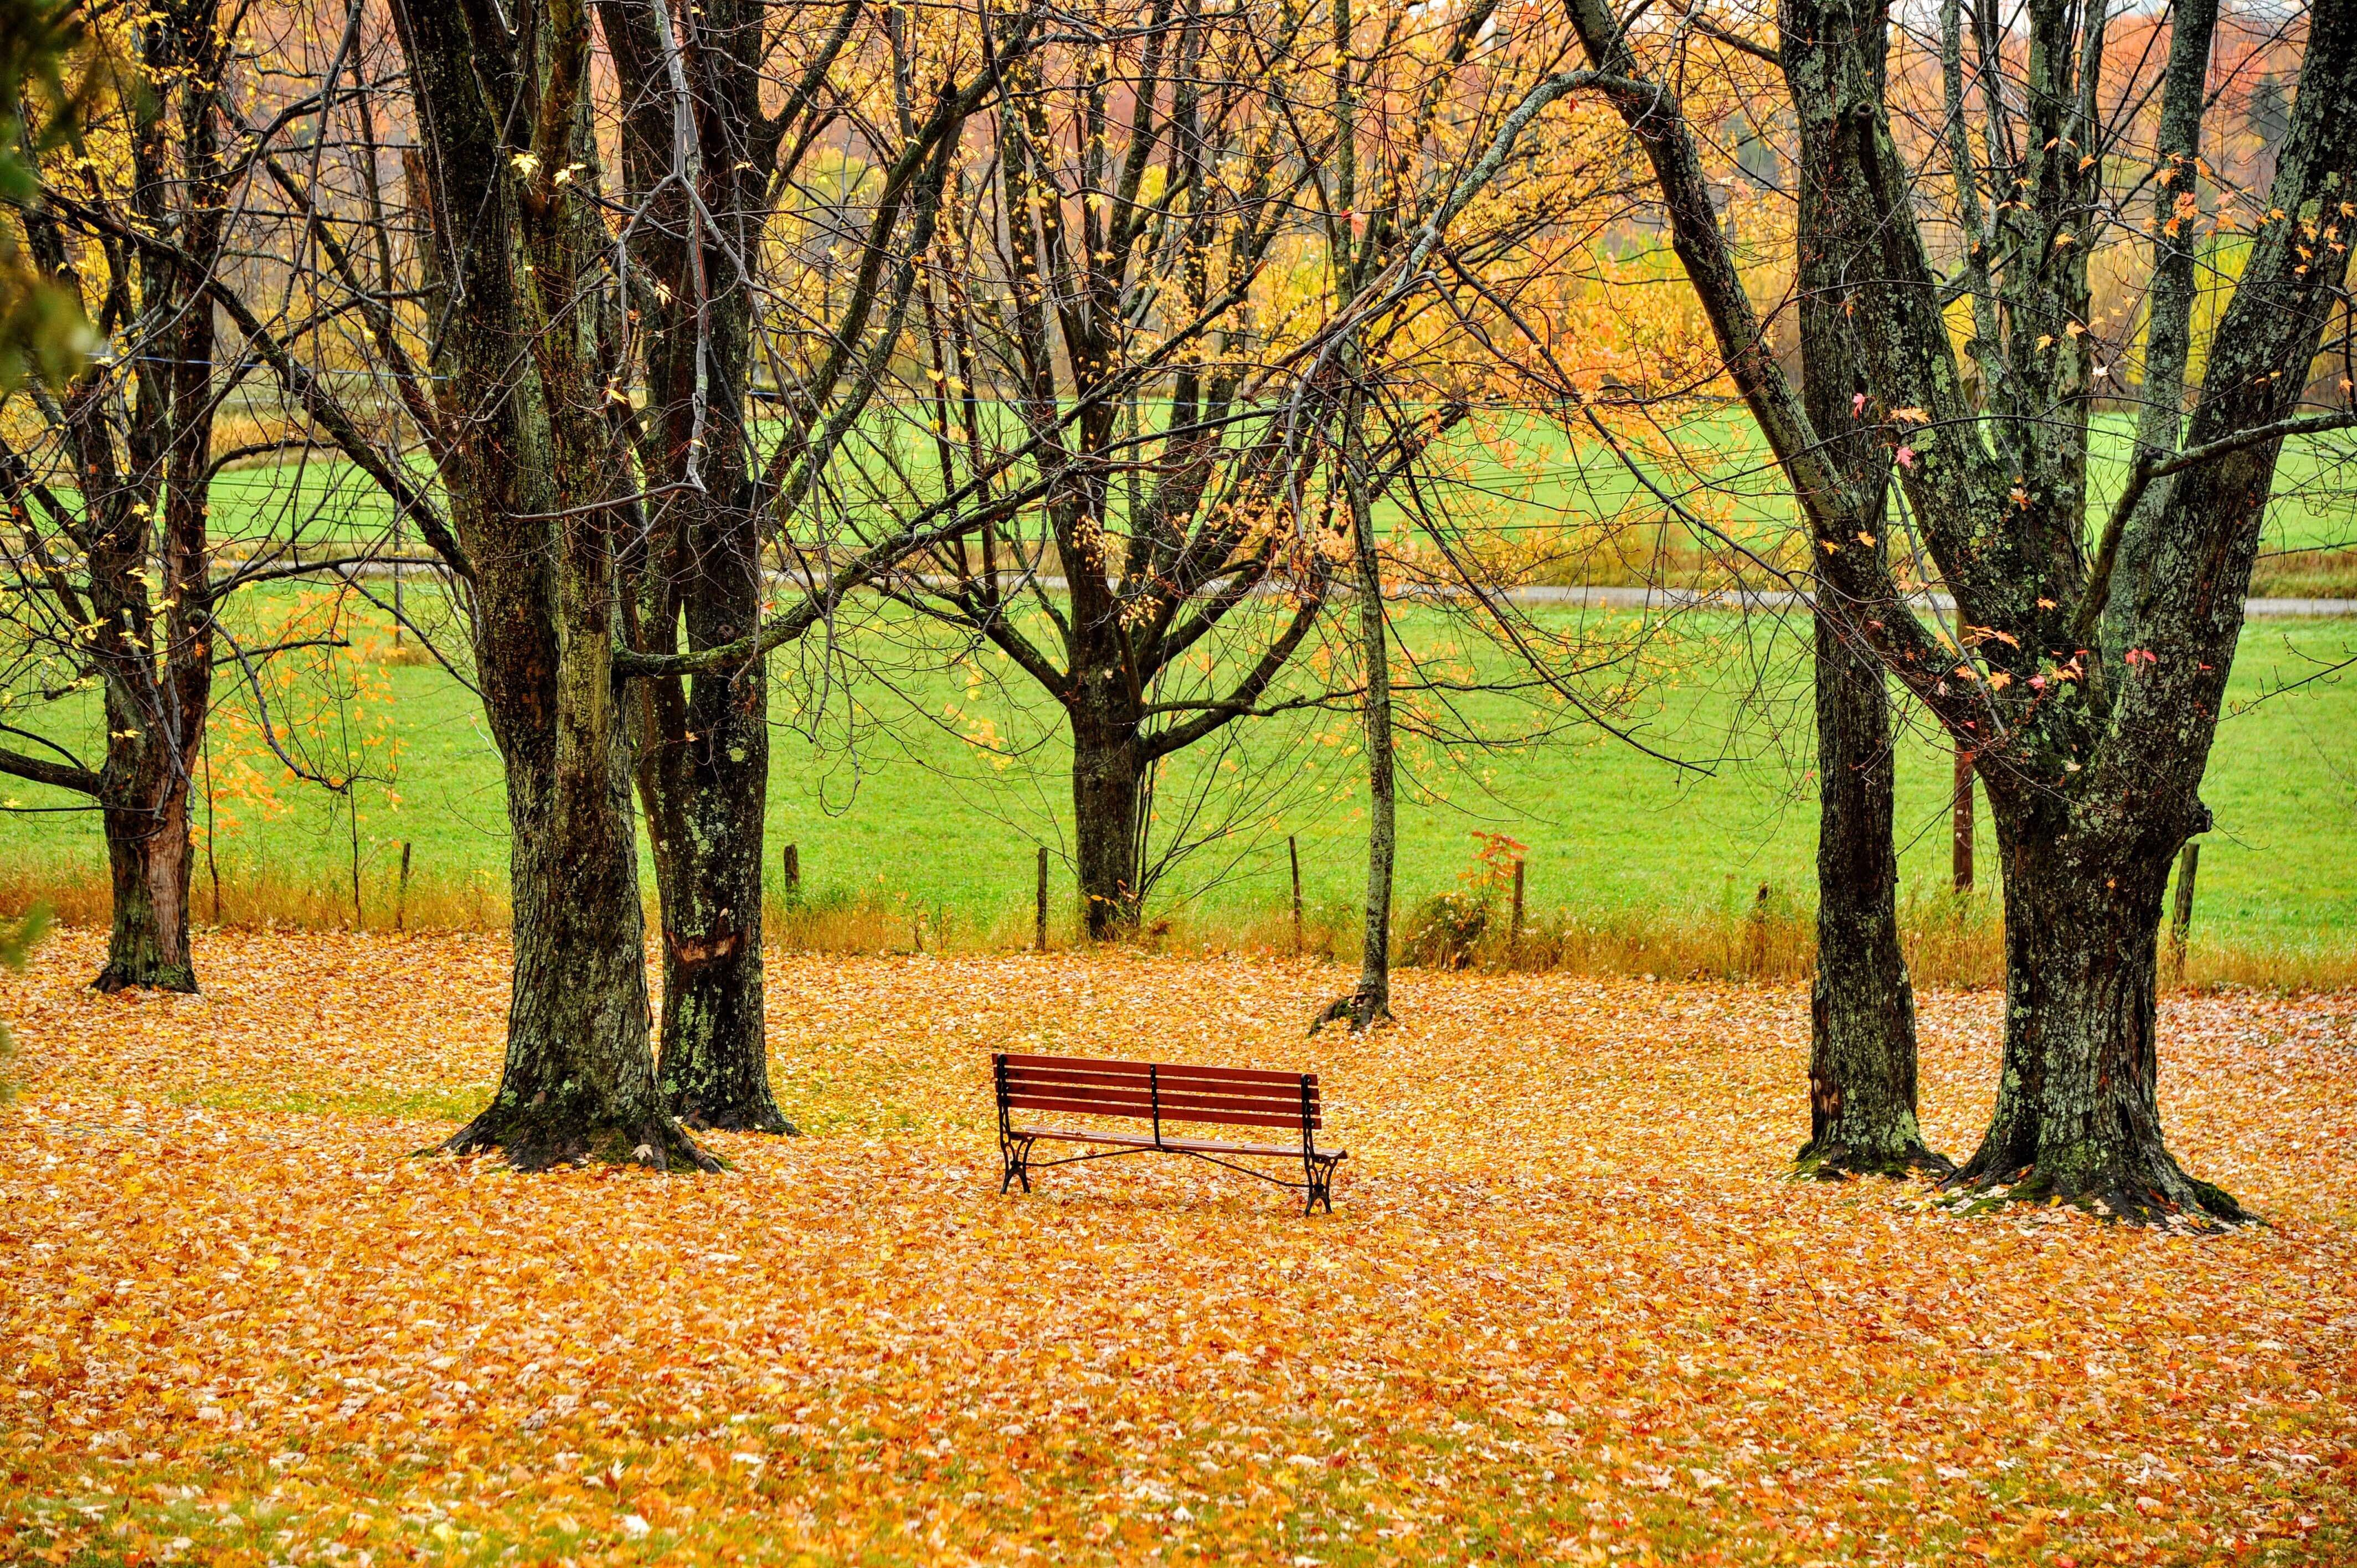 brown wooden bench between trees